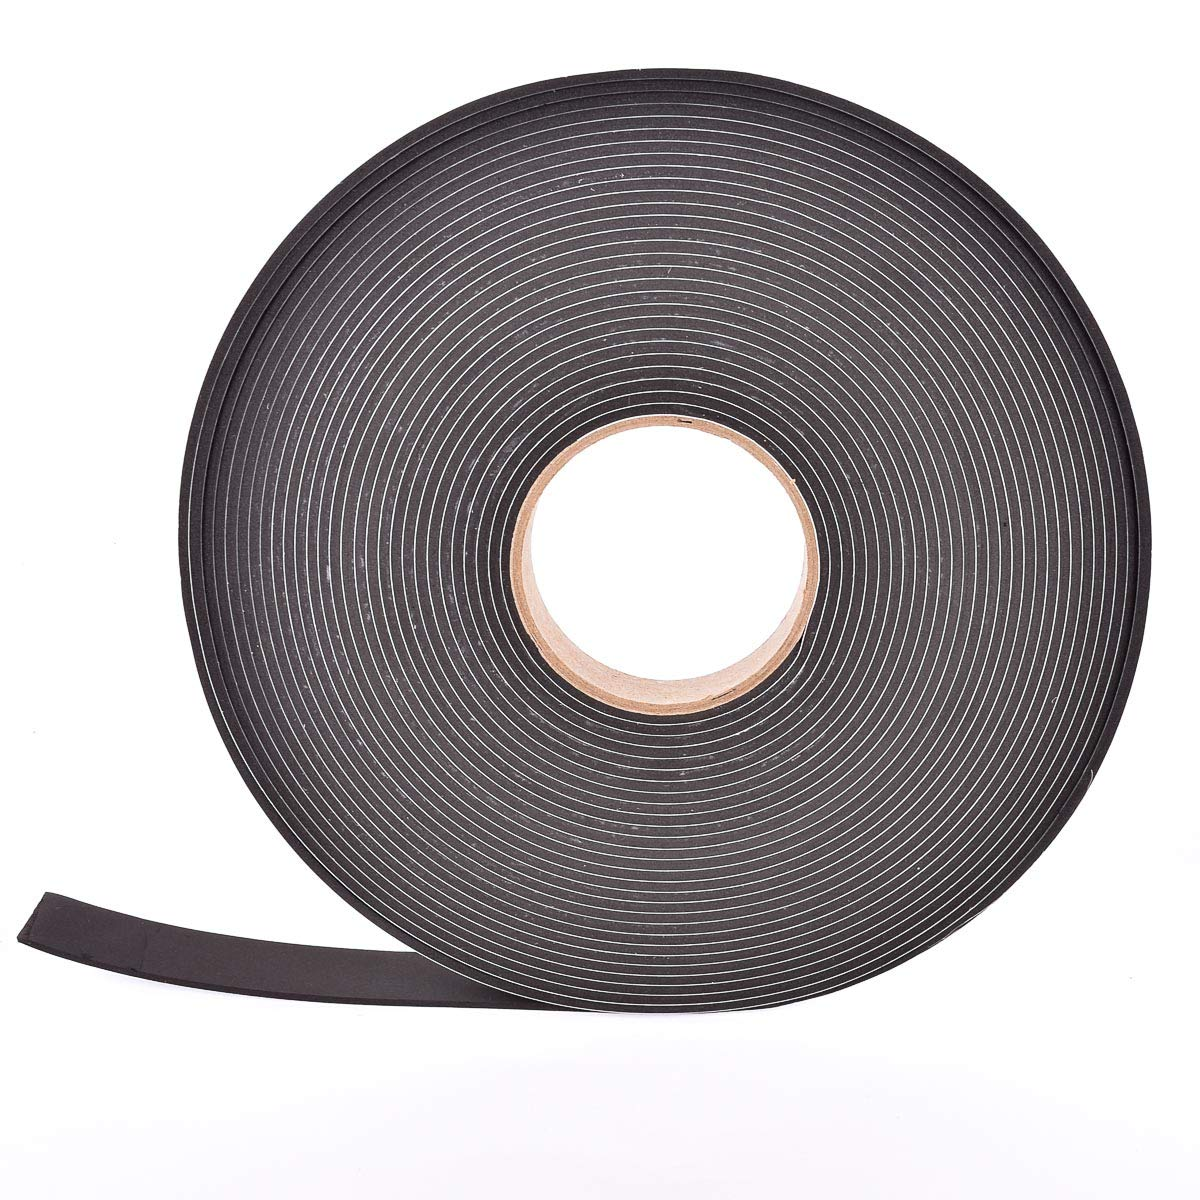 Sponge Neoprene El Paso Mall Stripping W Adhesive 1in Thick 1 Free Shipping Cheap Bargain Gift 8in X 50 Wide